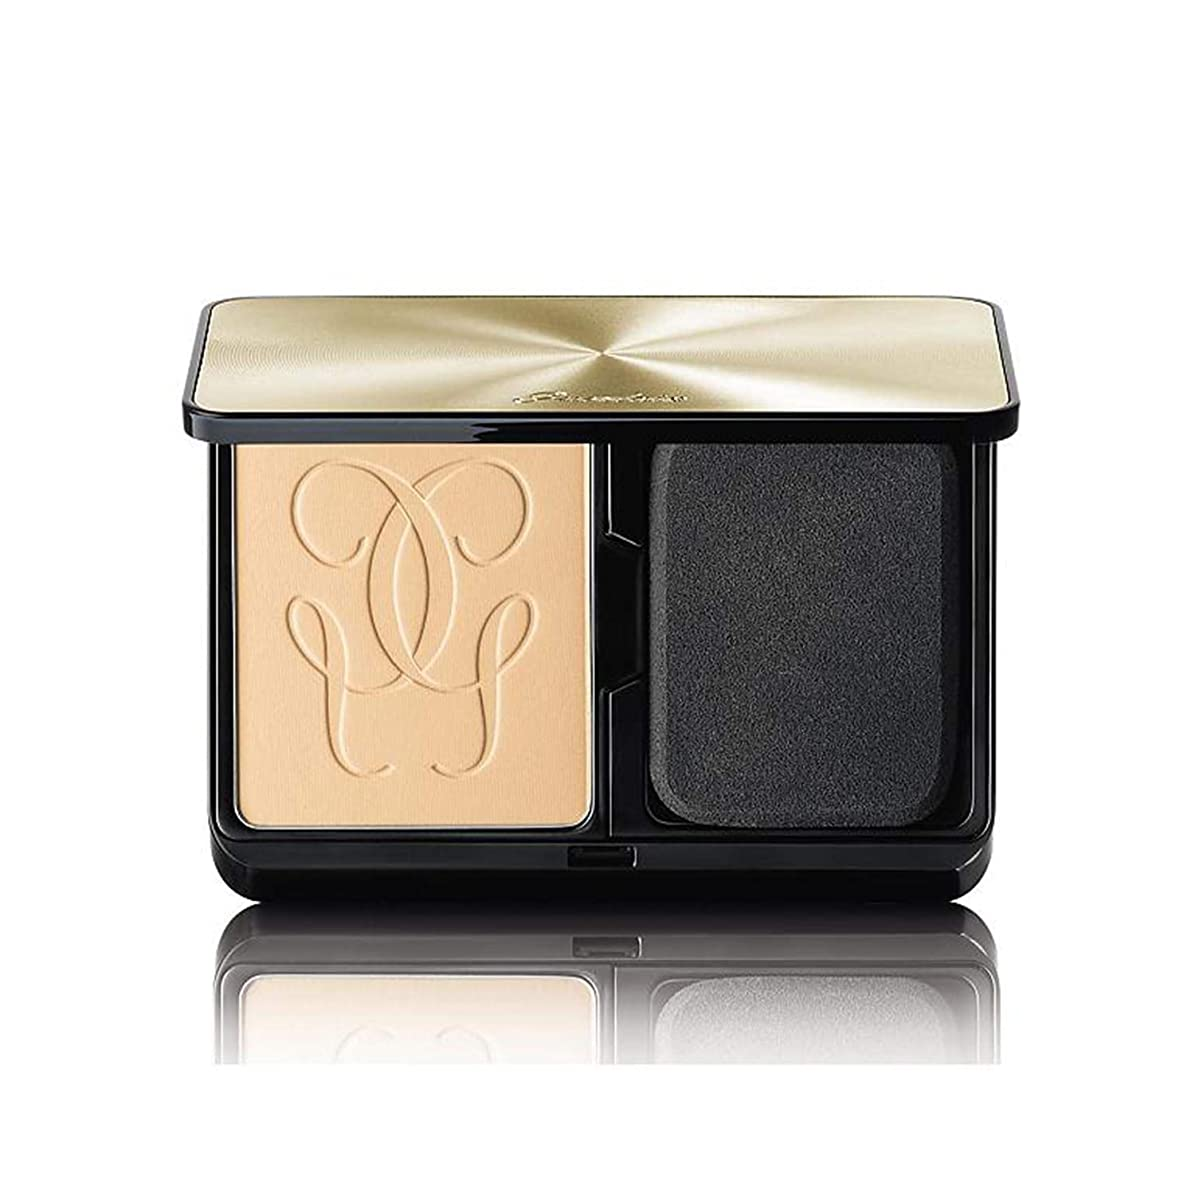 カスタムオートマークされたゲラン Lingerie De Peau Mat Alive Buildable Compact Powder Foundation SPF 15 - # 01N Very Light 8.5g/0.29oz並行輸入品